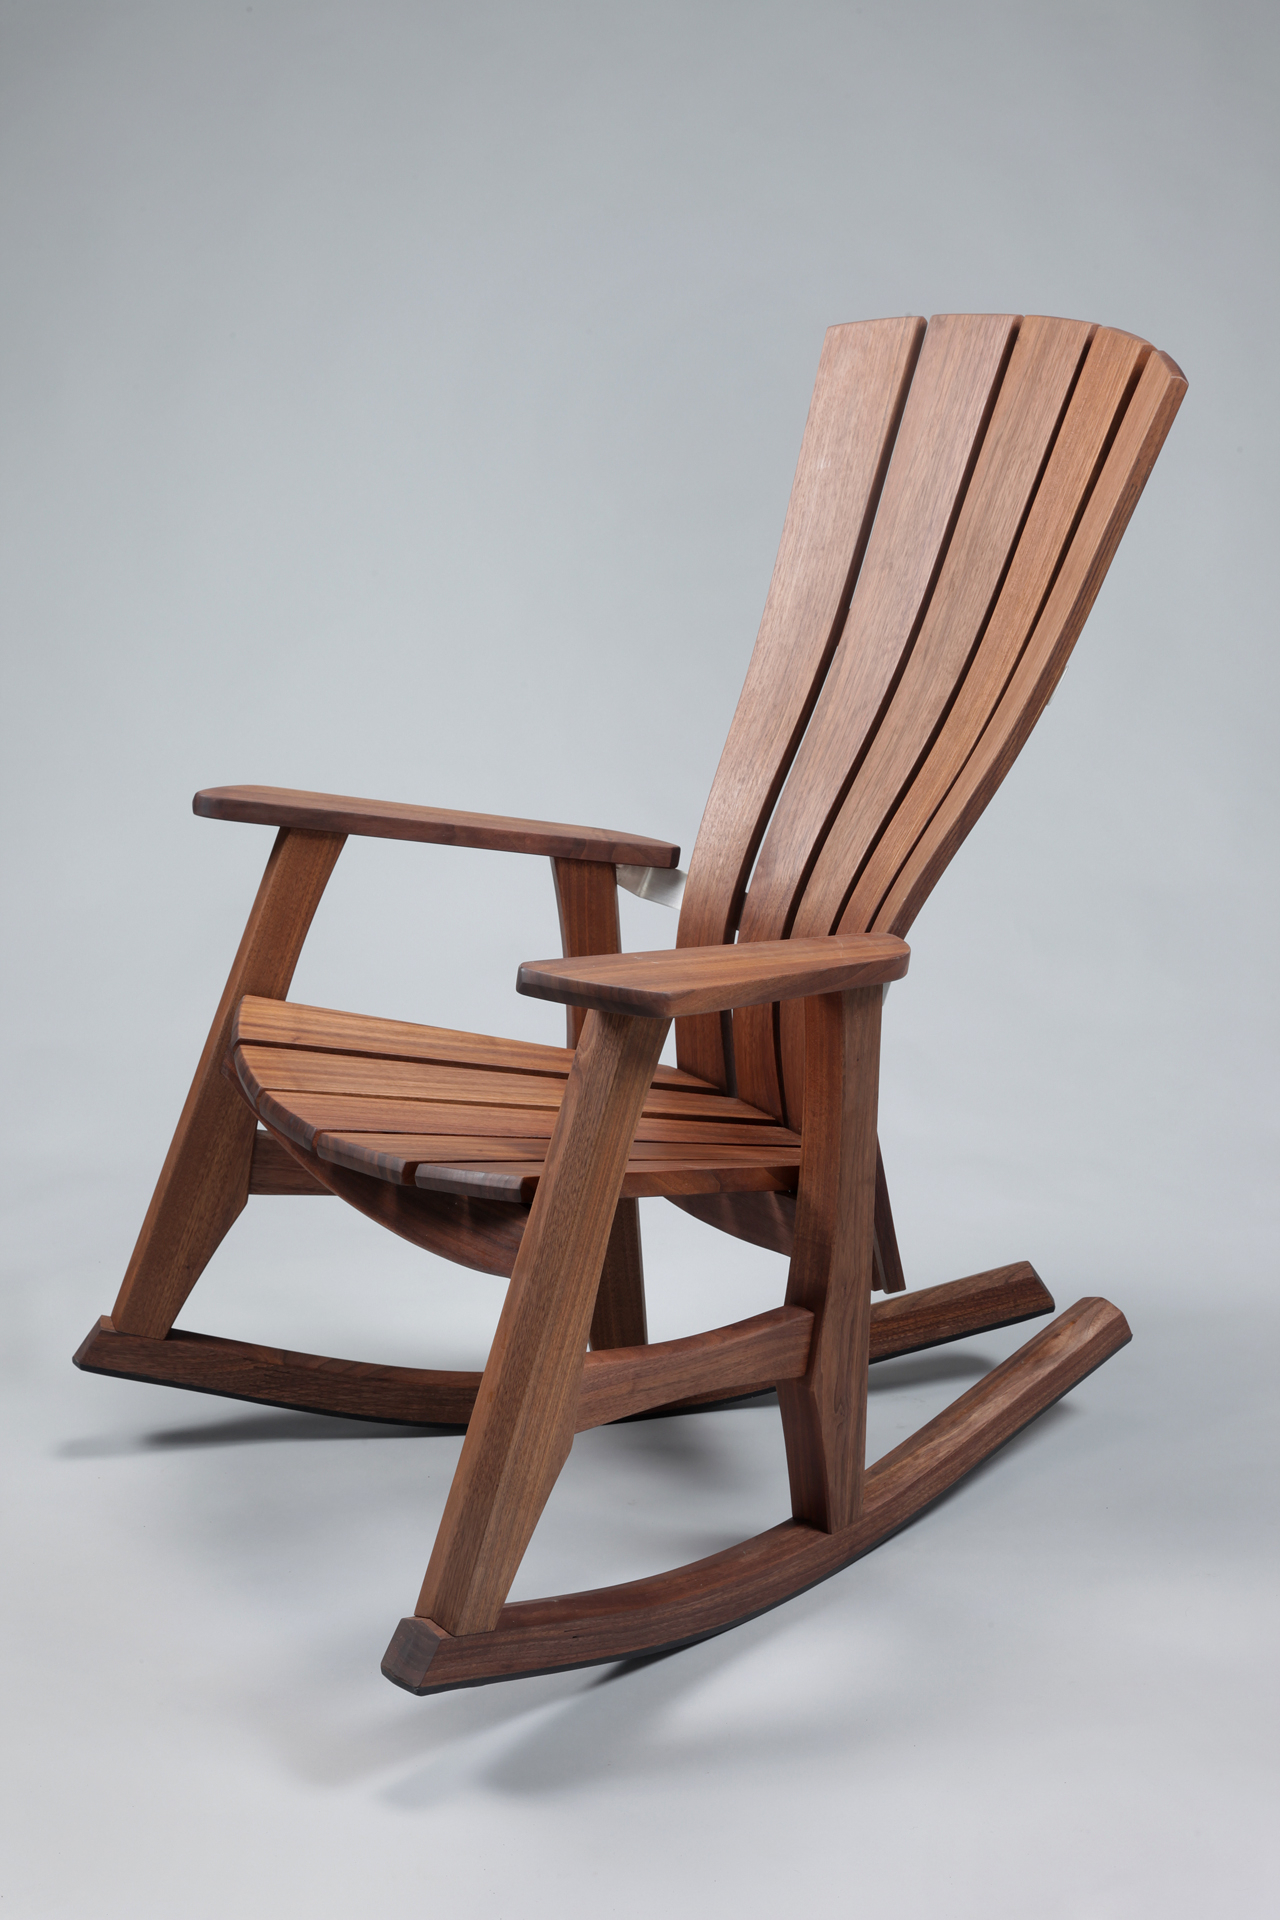 Inspiration about Wood Rocking Chair That Takes Spotlight | Home Decor News Intended For Beige Fabric And Cherry Wood Rocking Chairs (#17 of 20)